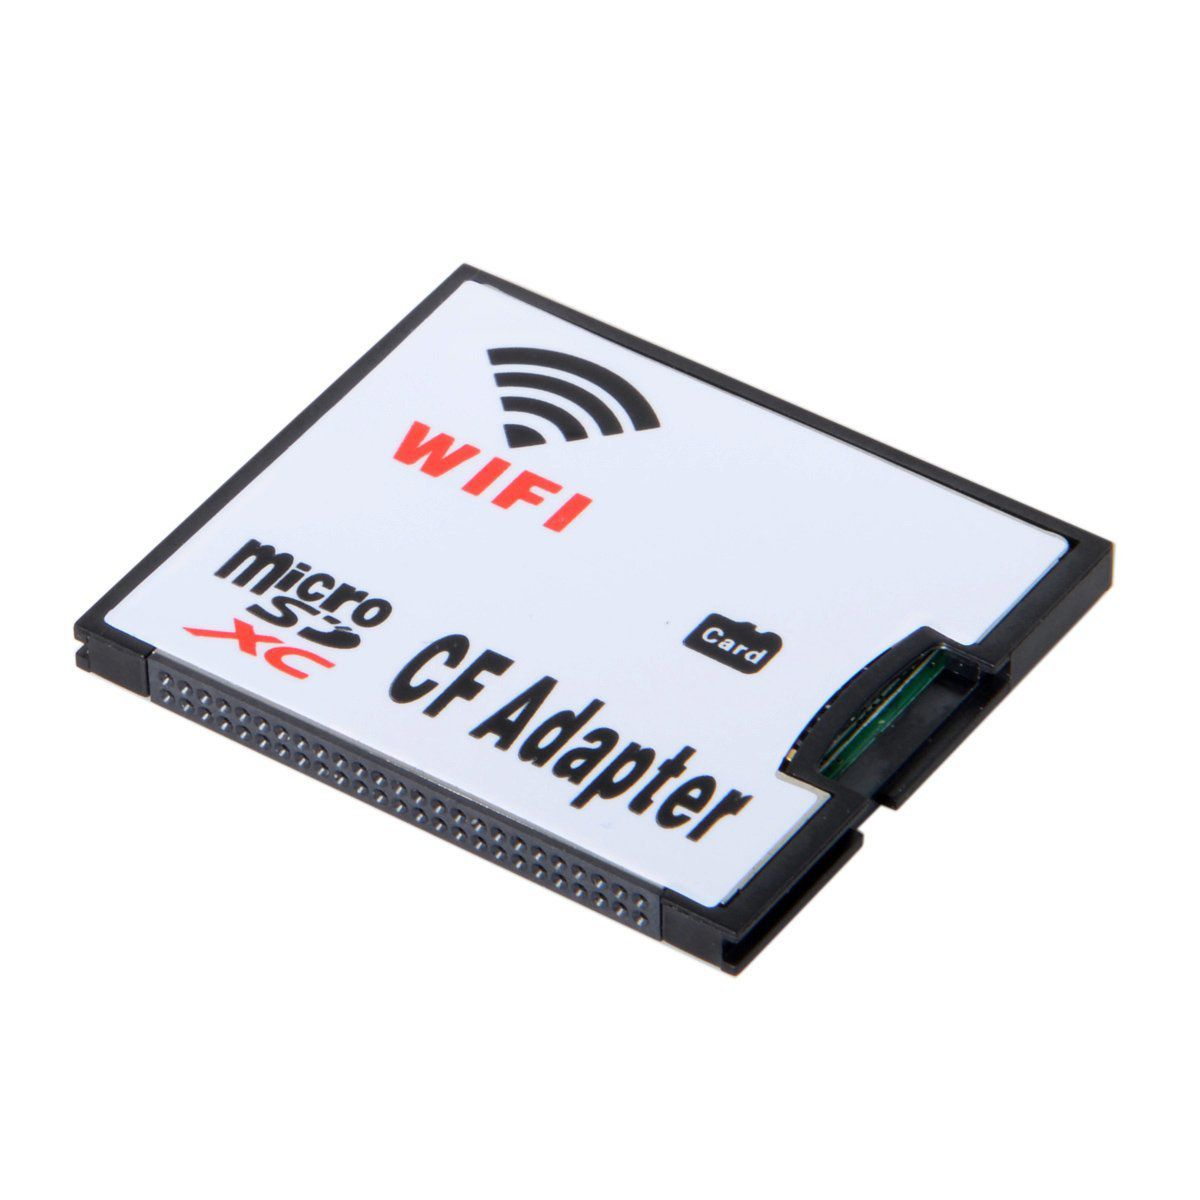 WIFI Adapter Memory Card TF Micro-SD to CF Compact Flash Card Kit for Digital Camera compact flash cf to pc card pcmcia adapter cards reader for laptop notebook z17 drop ship